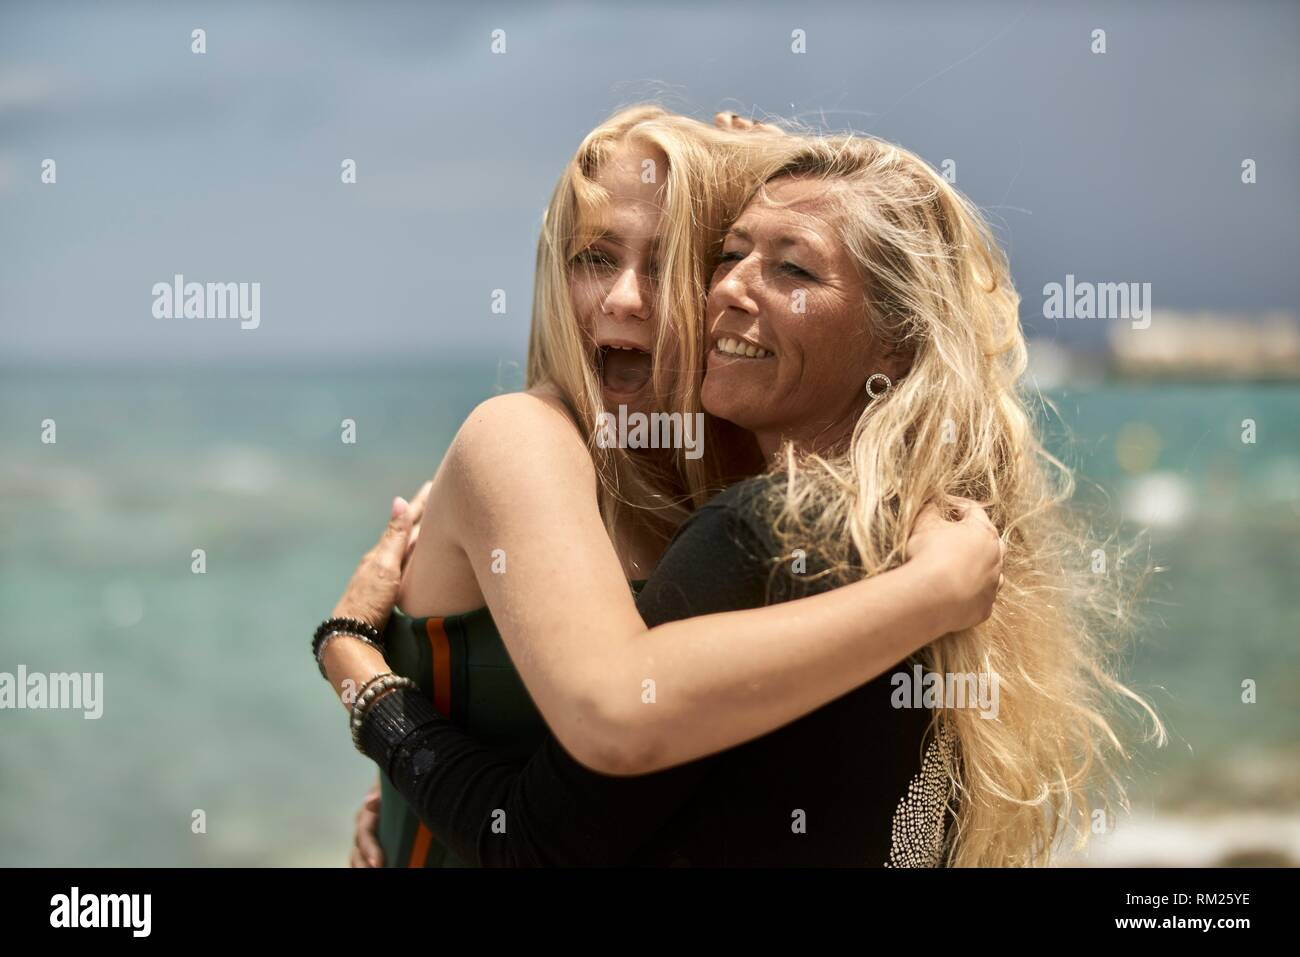 Mother (43 years) and teenage daughter (13 years) at seaside, bonding, embracing, screaming, motherhood, single parent. Danish ethnicity. - Stock Image